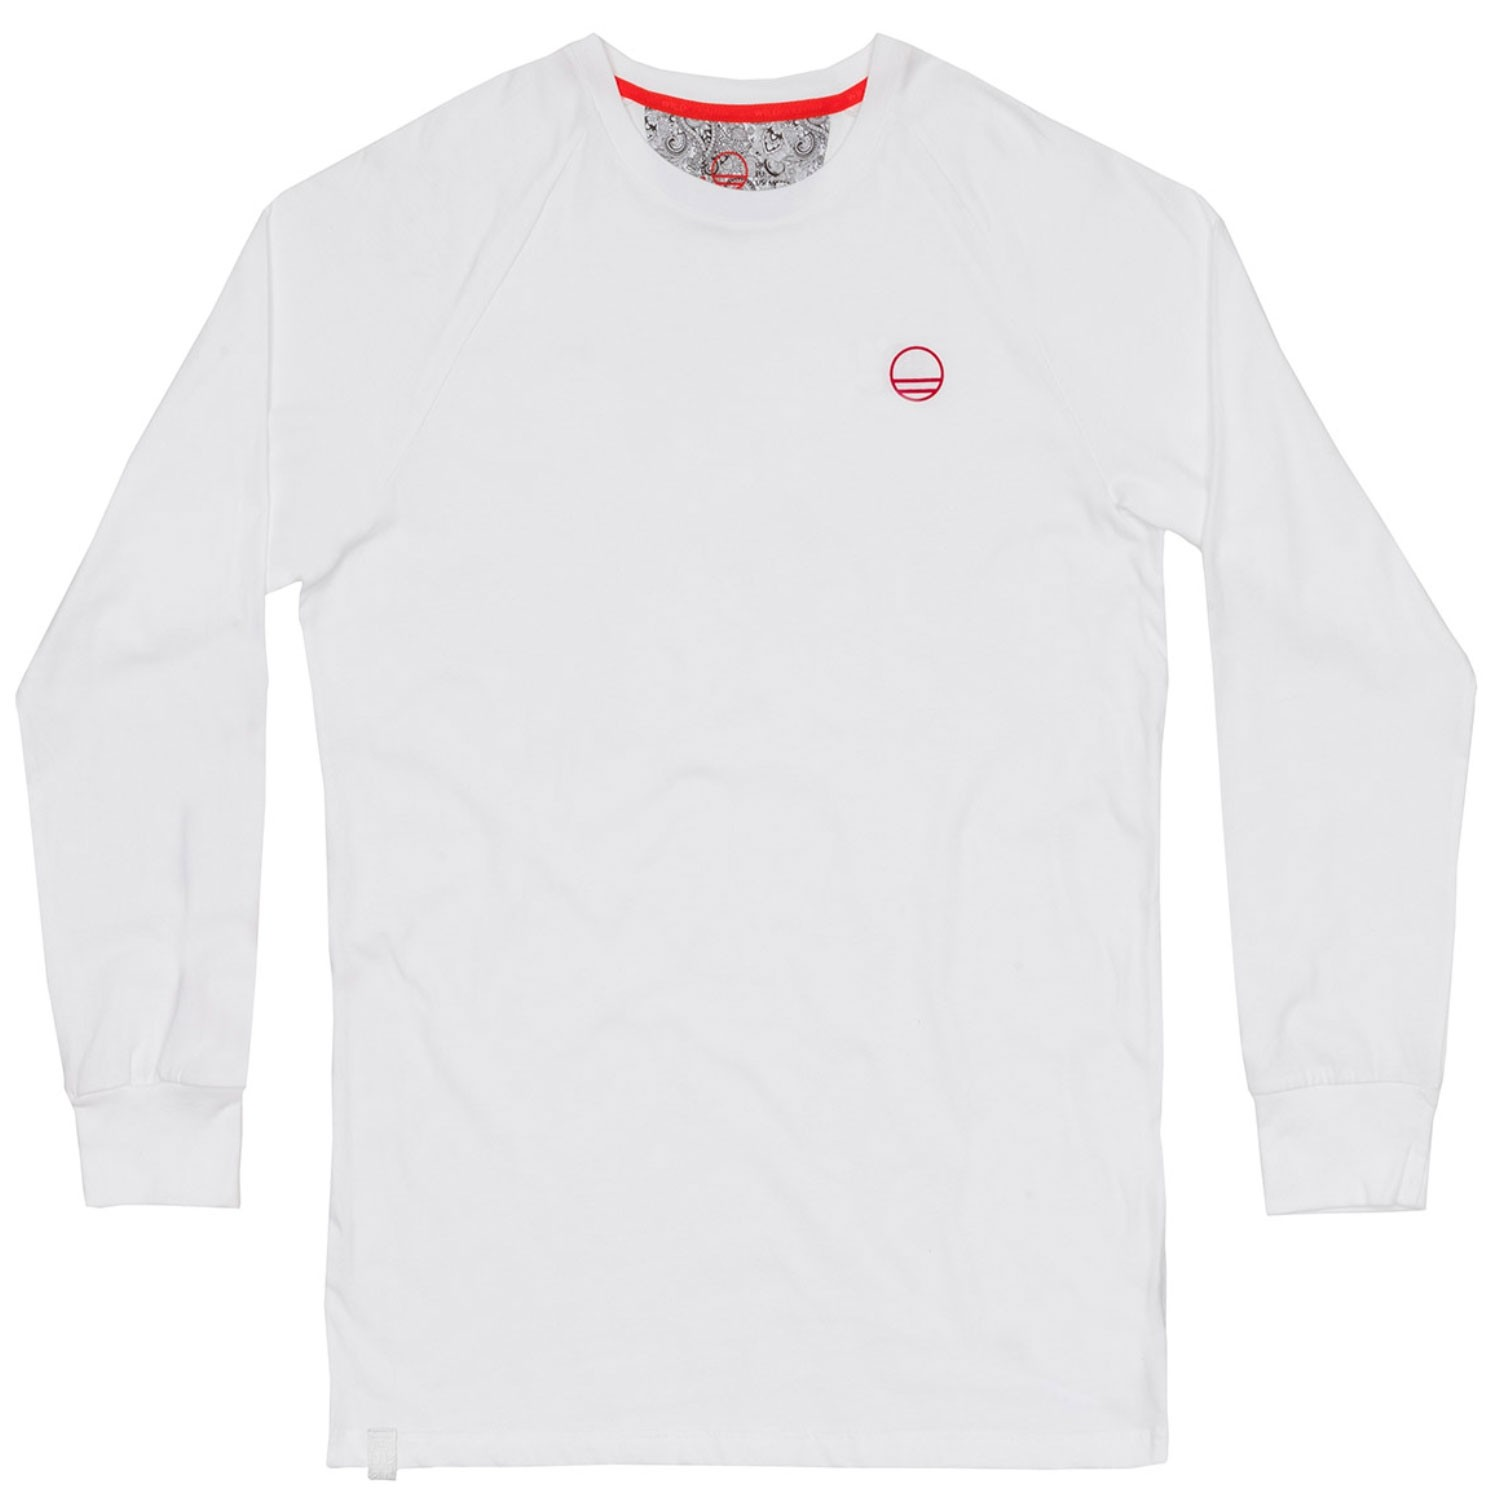 Wild Country Stanage Long Sleeve Tee - White